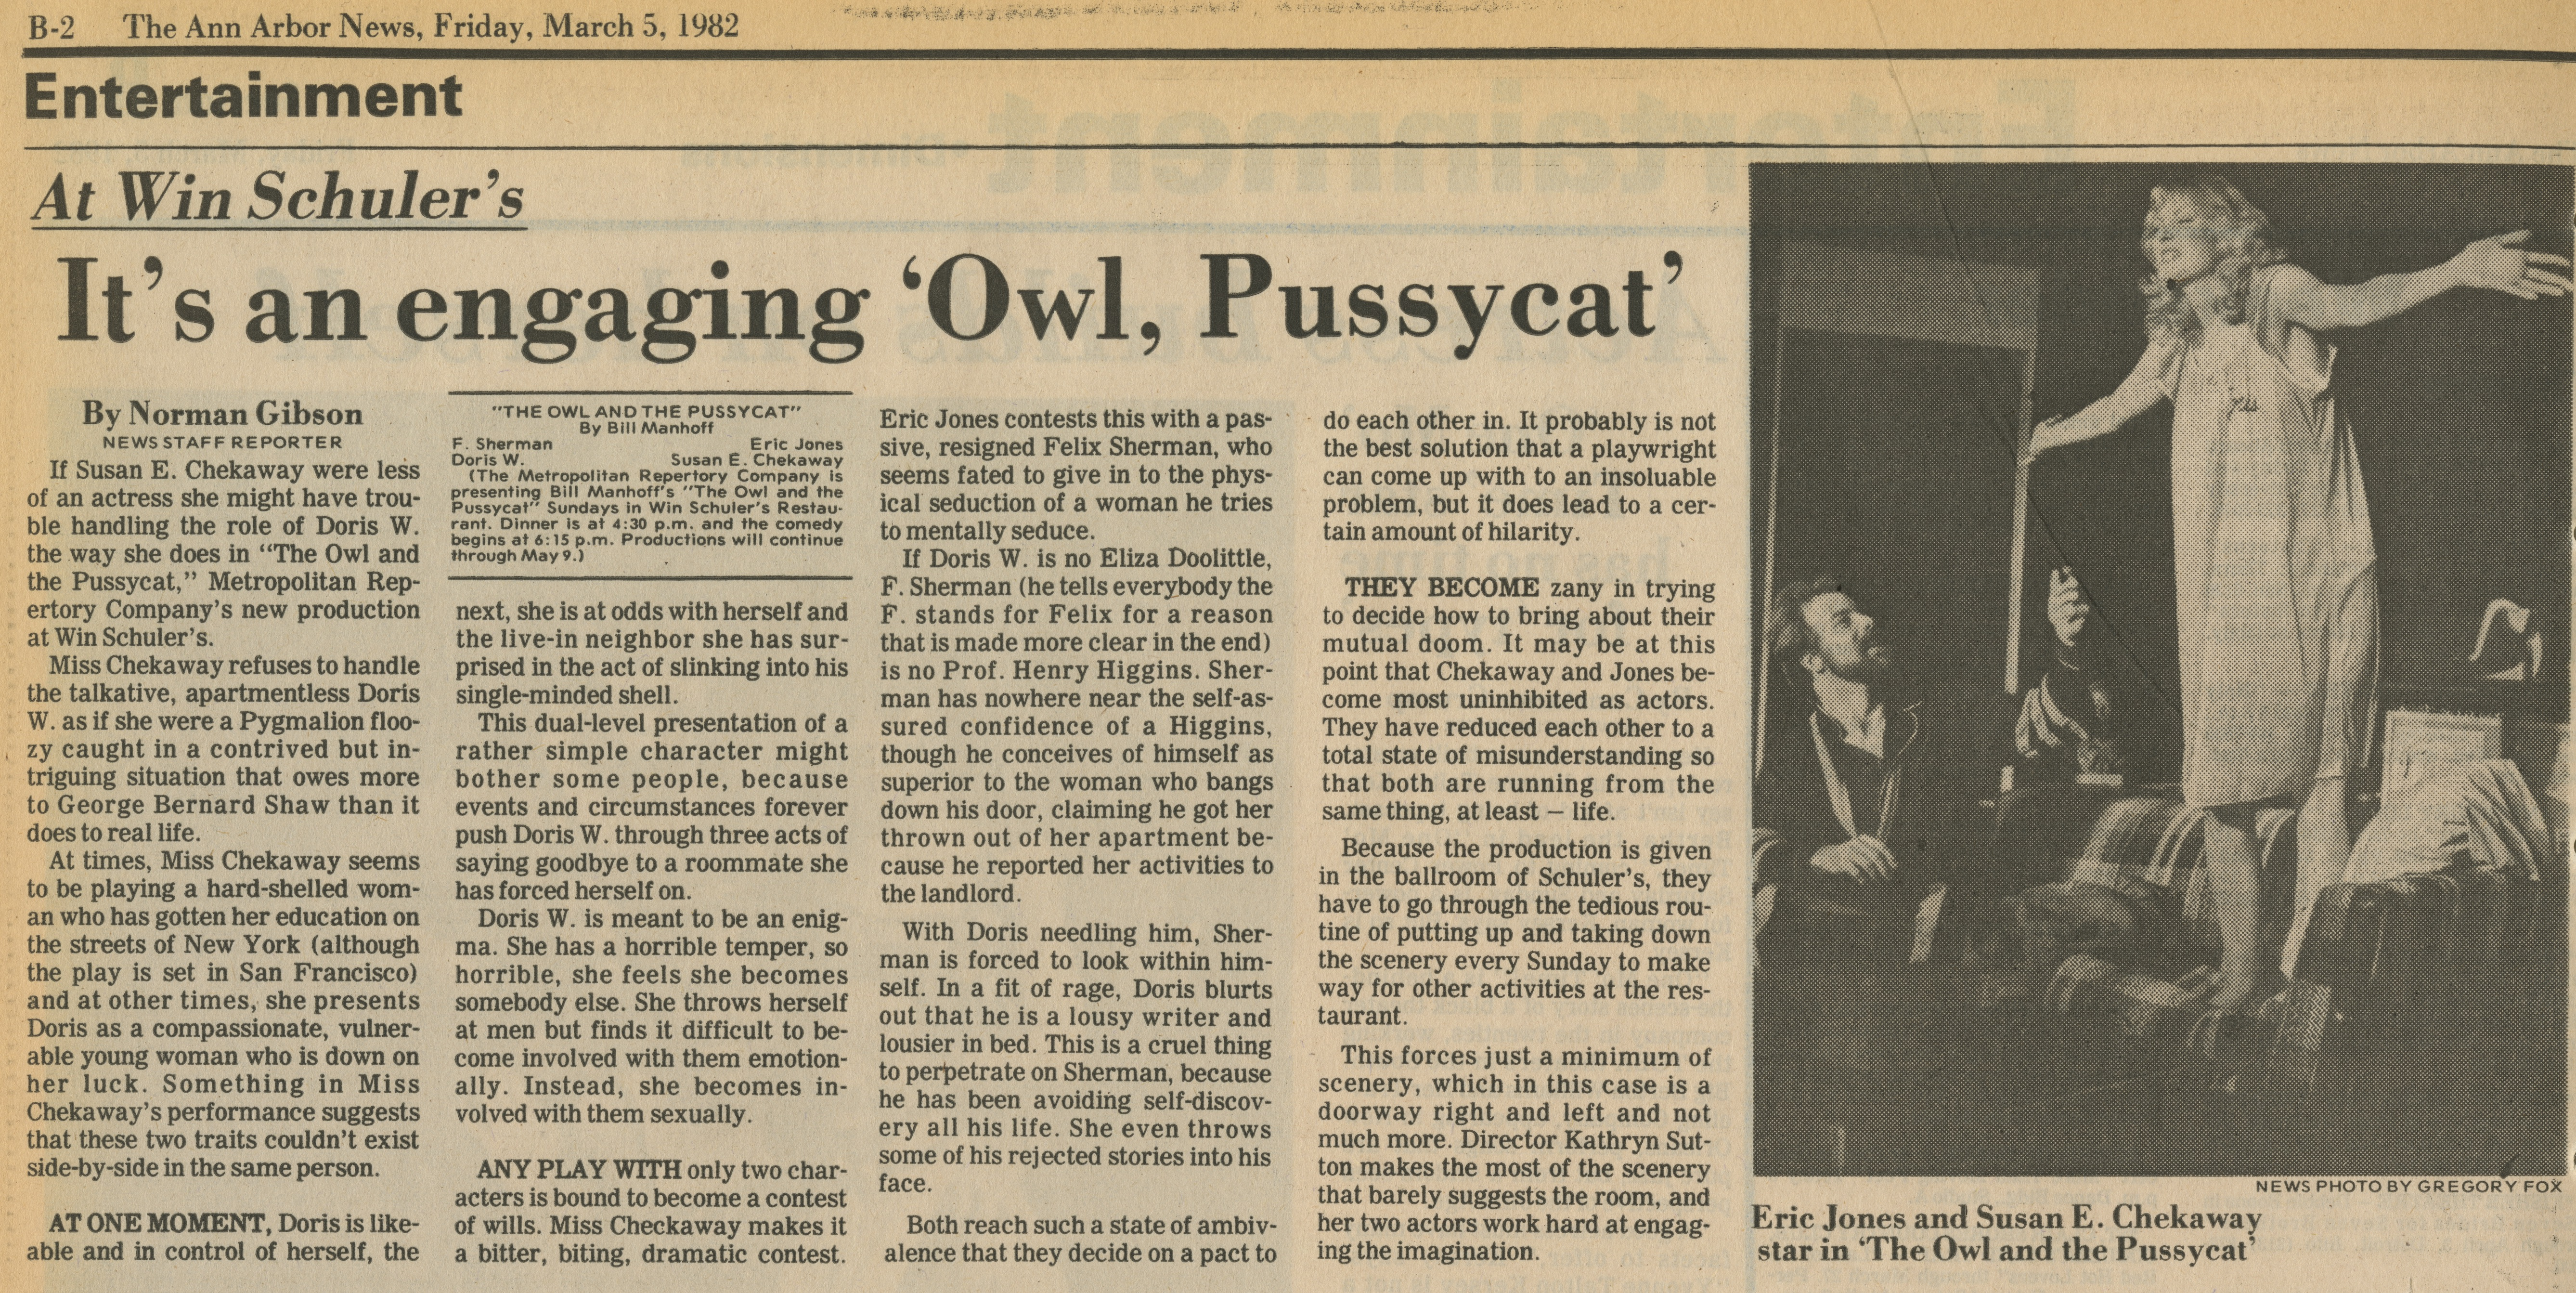 At Win Schuler's It's an engaging 'Owl, Pussycat' image